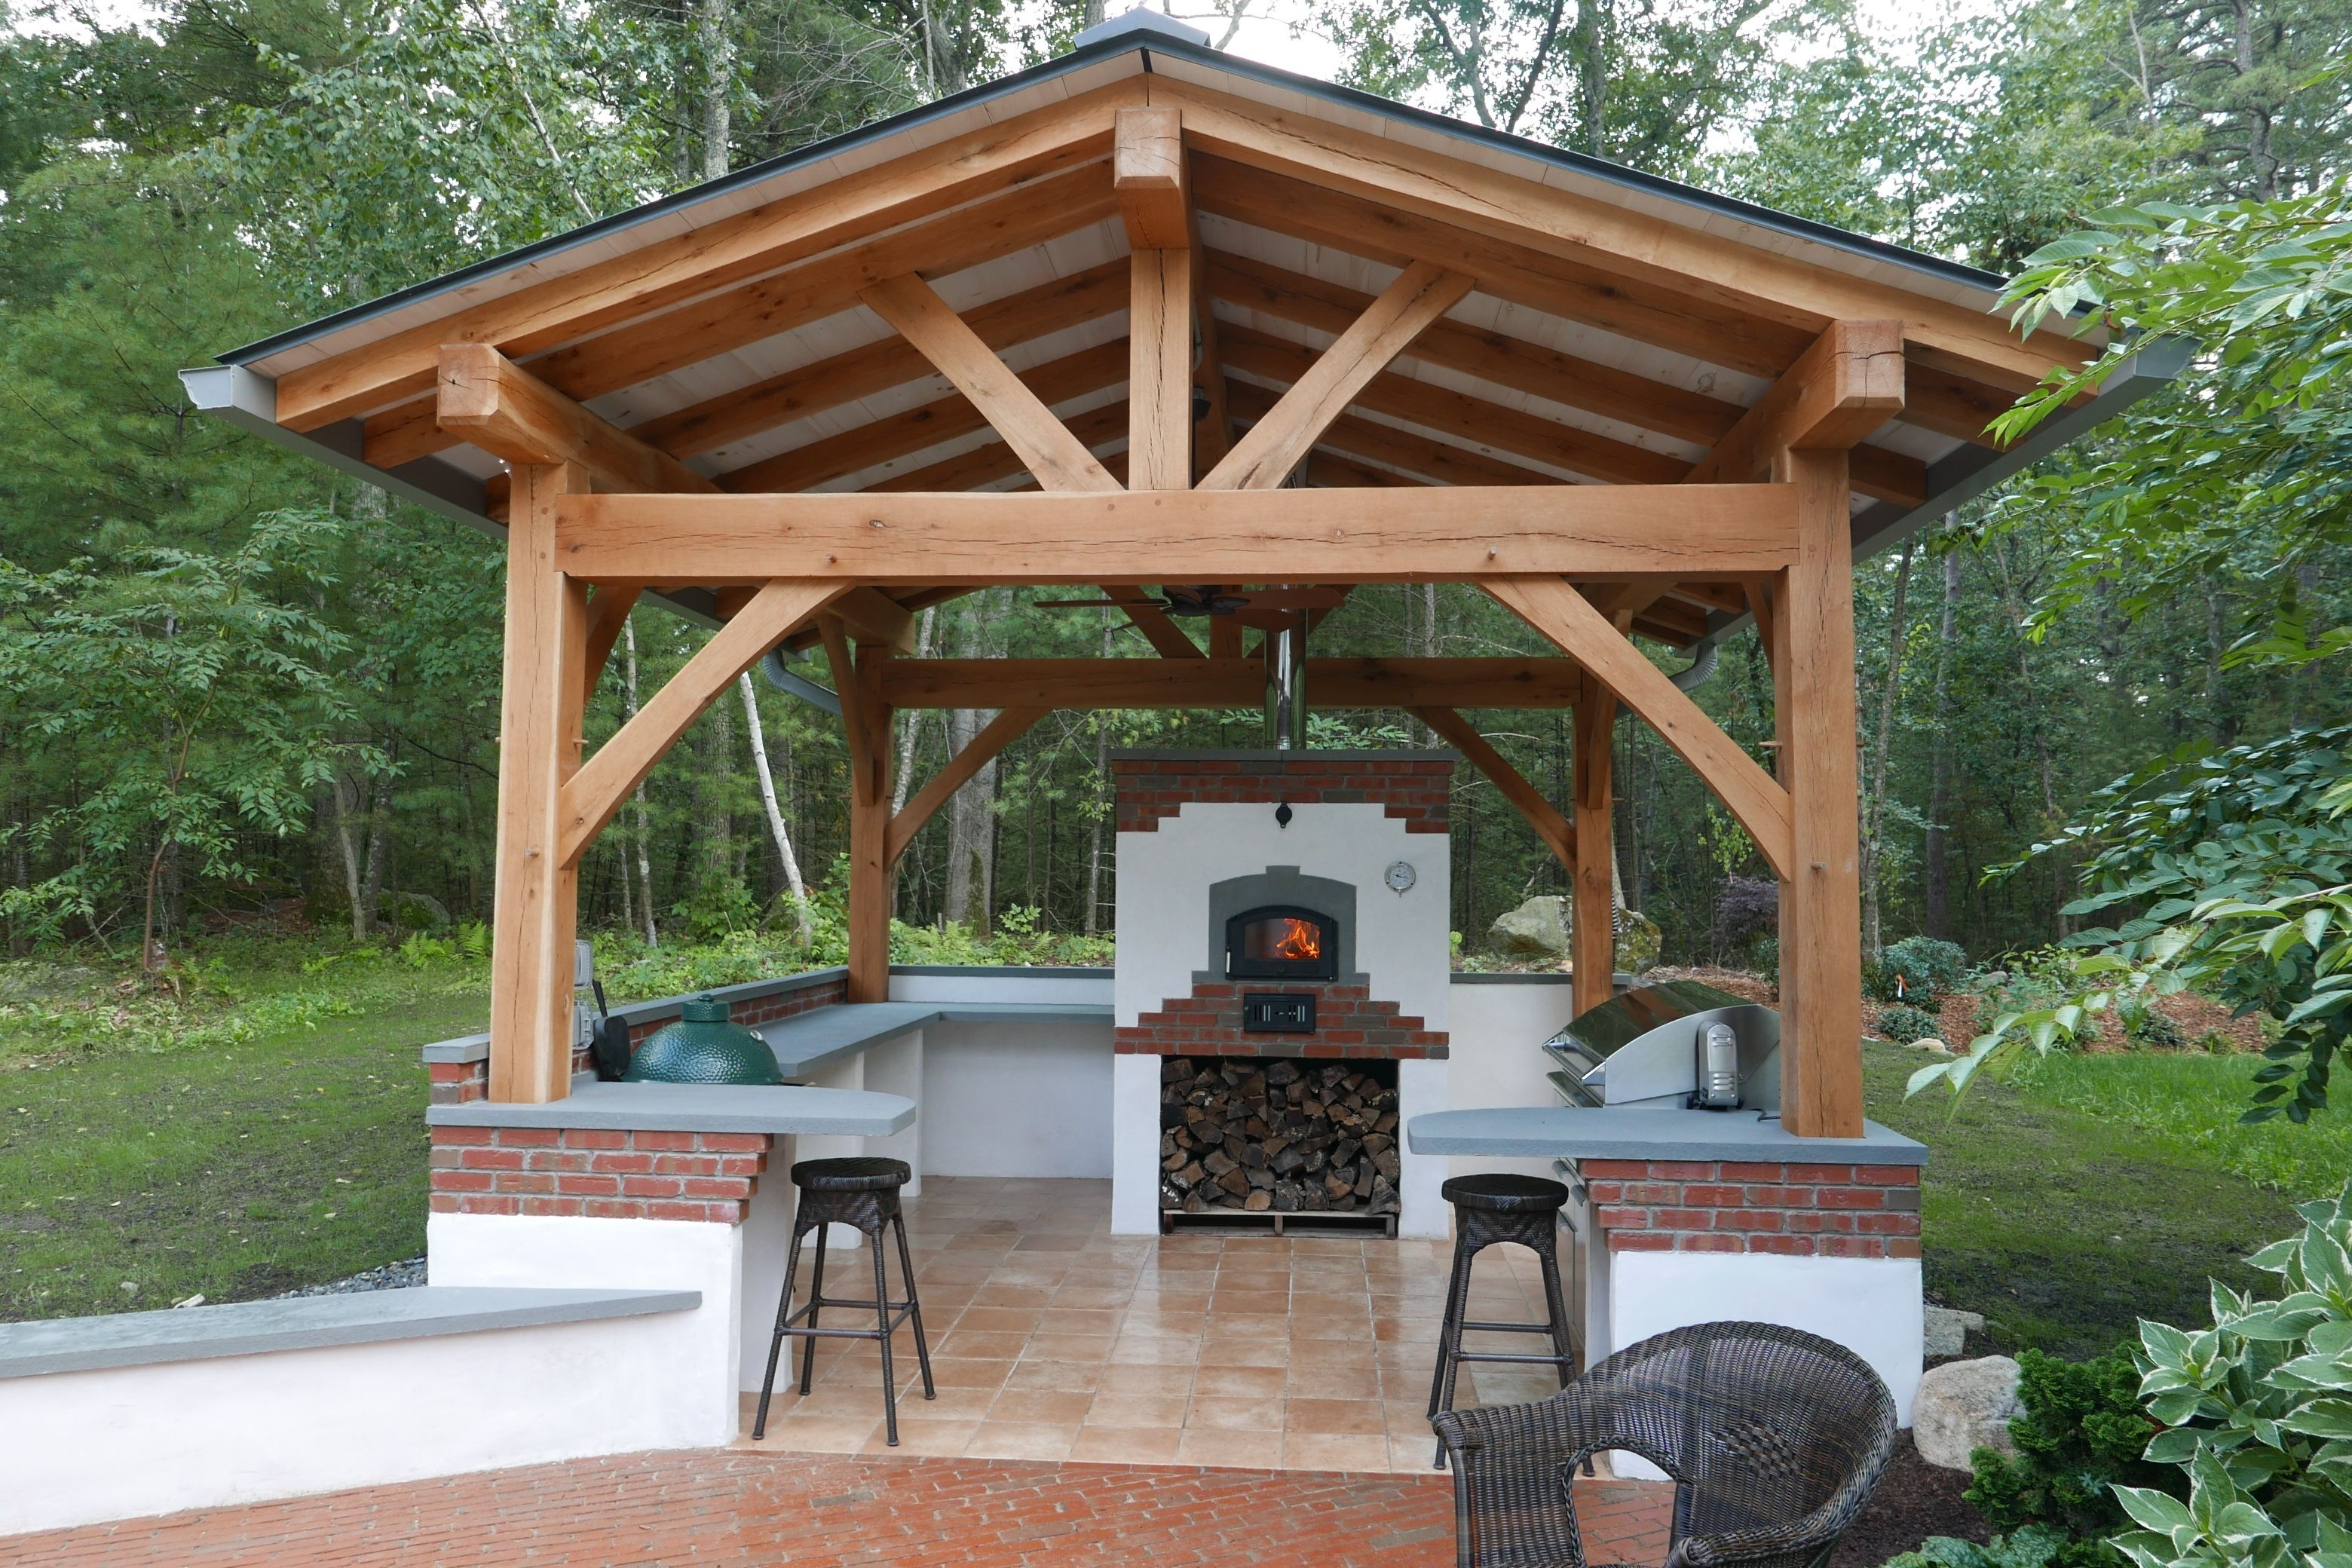 Beautiful Cedar Gazebo With A Gable Roof And Neatly Organized Stone With Fireplace Simple Yet Creative Backyard Additi Grill Gazebo Roof Paint Outdoor Kitchen